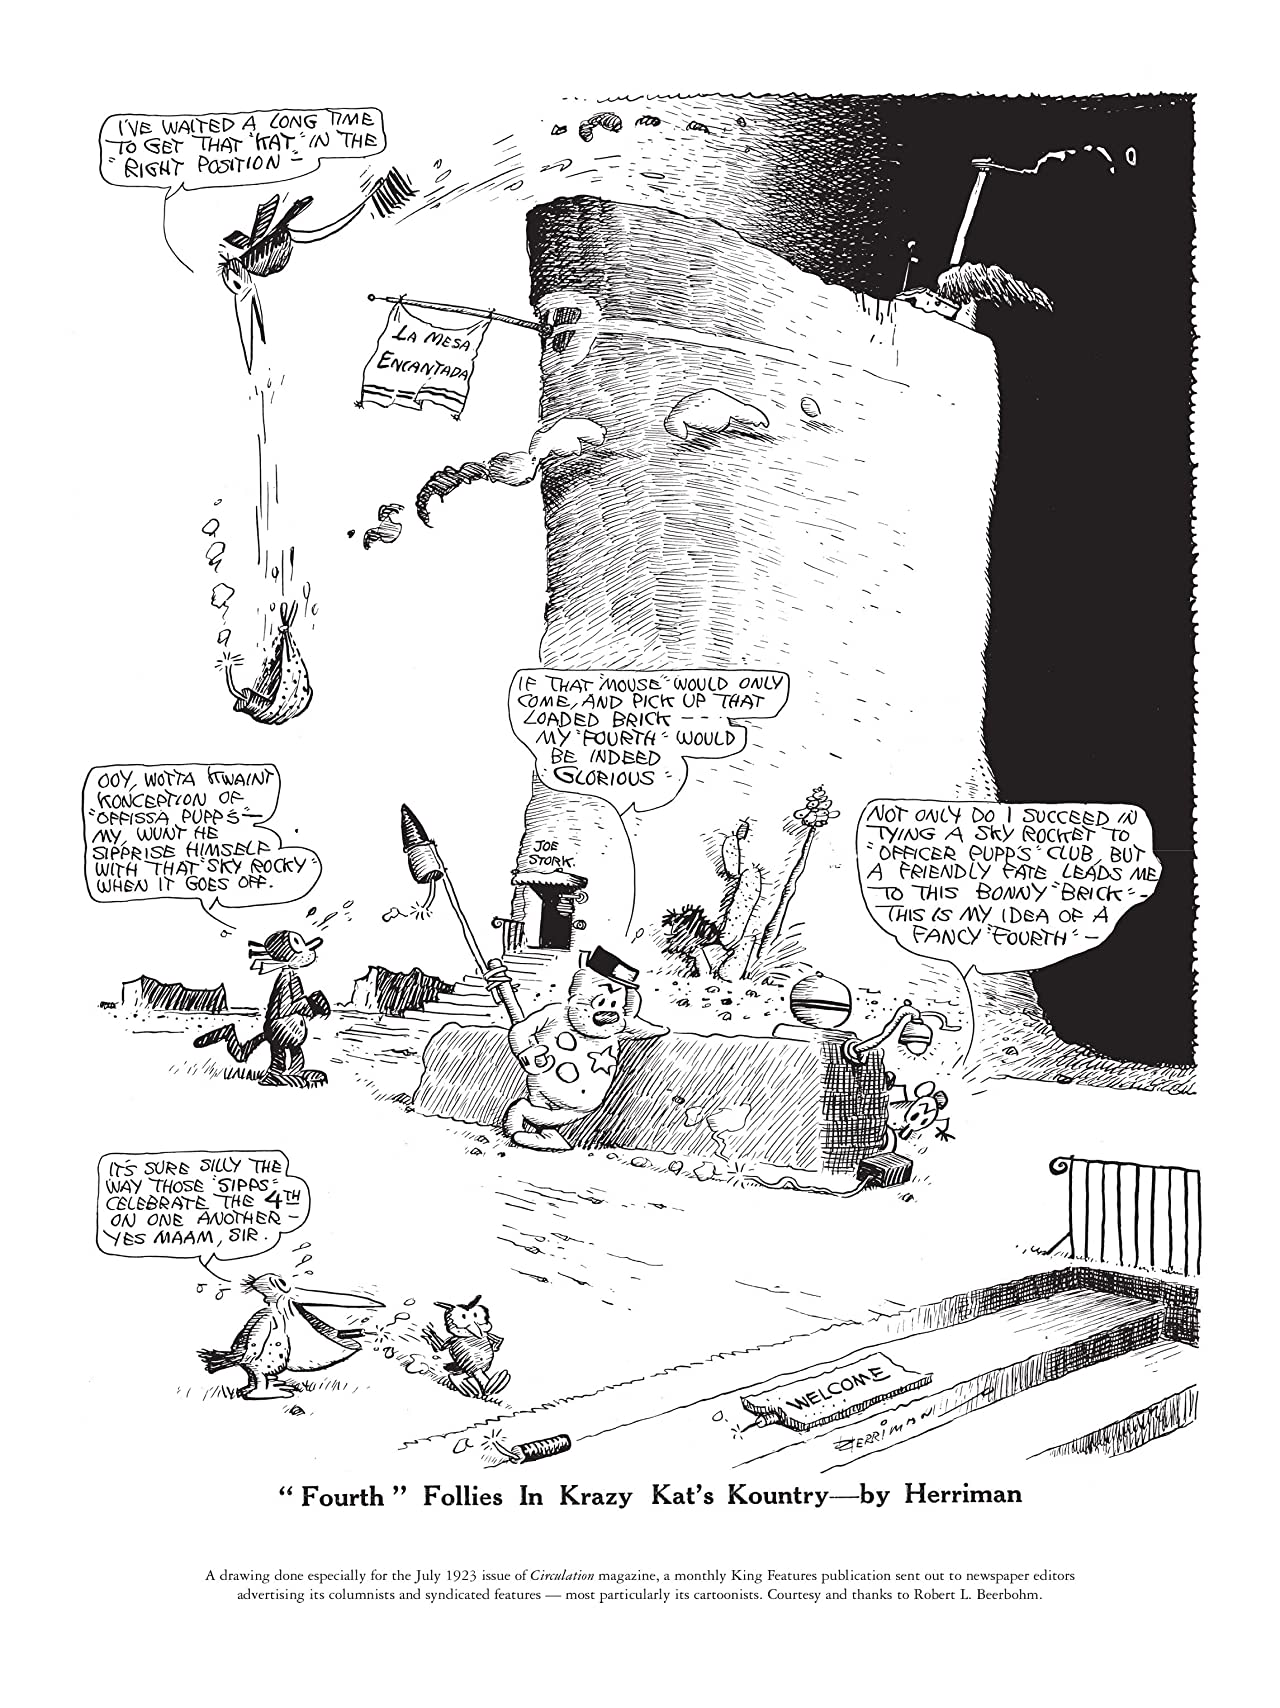 Krazy & Ignatz: 1931-1932 - A Kat A'Lilt With Song